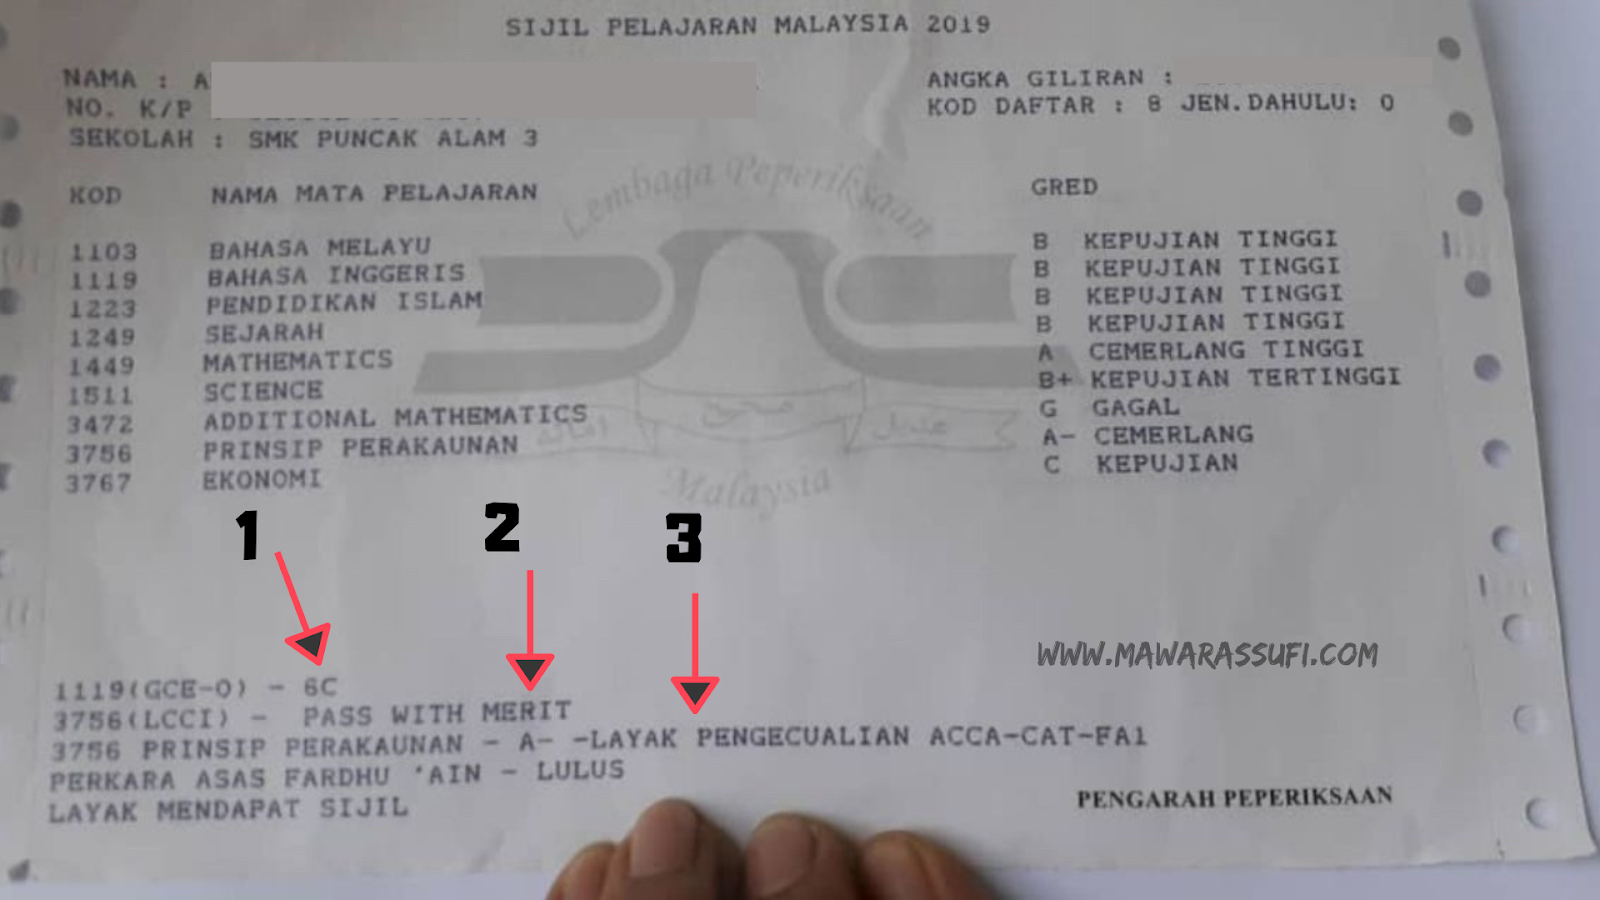 apakah maksud 1119 gce o dalam slip result spm mawar assufi lifestyle blogger link href https imgur com atjbnvg rel shortcut icon type image x icon link href https imgur com atjbnvg rel icon apakah maksud 1119 gce o dalam slip